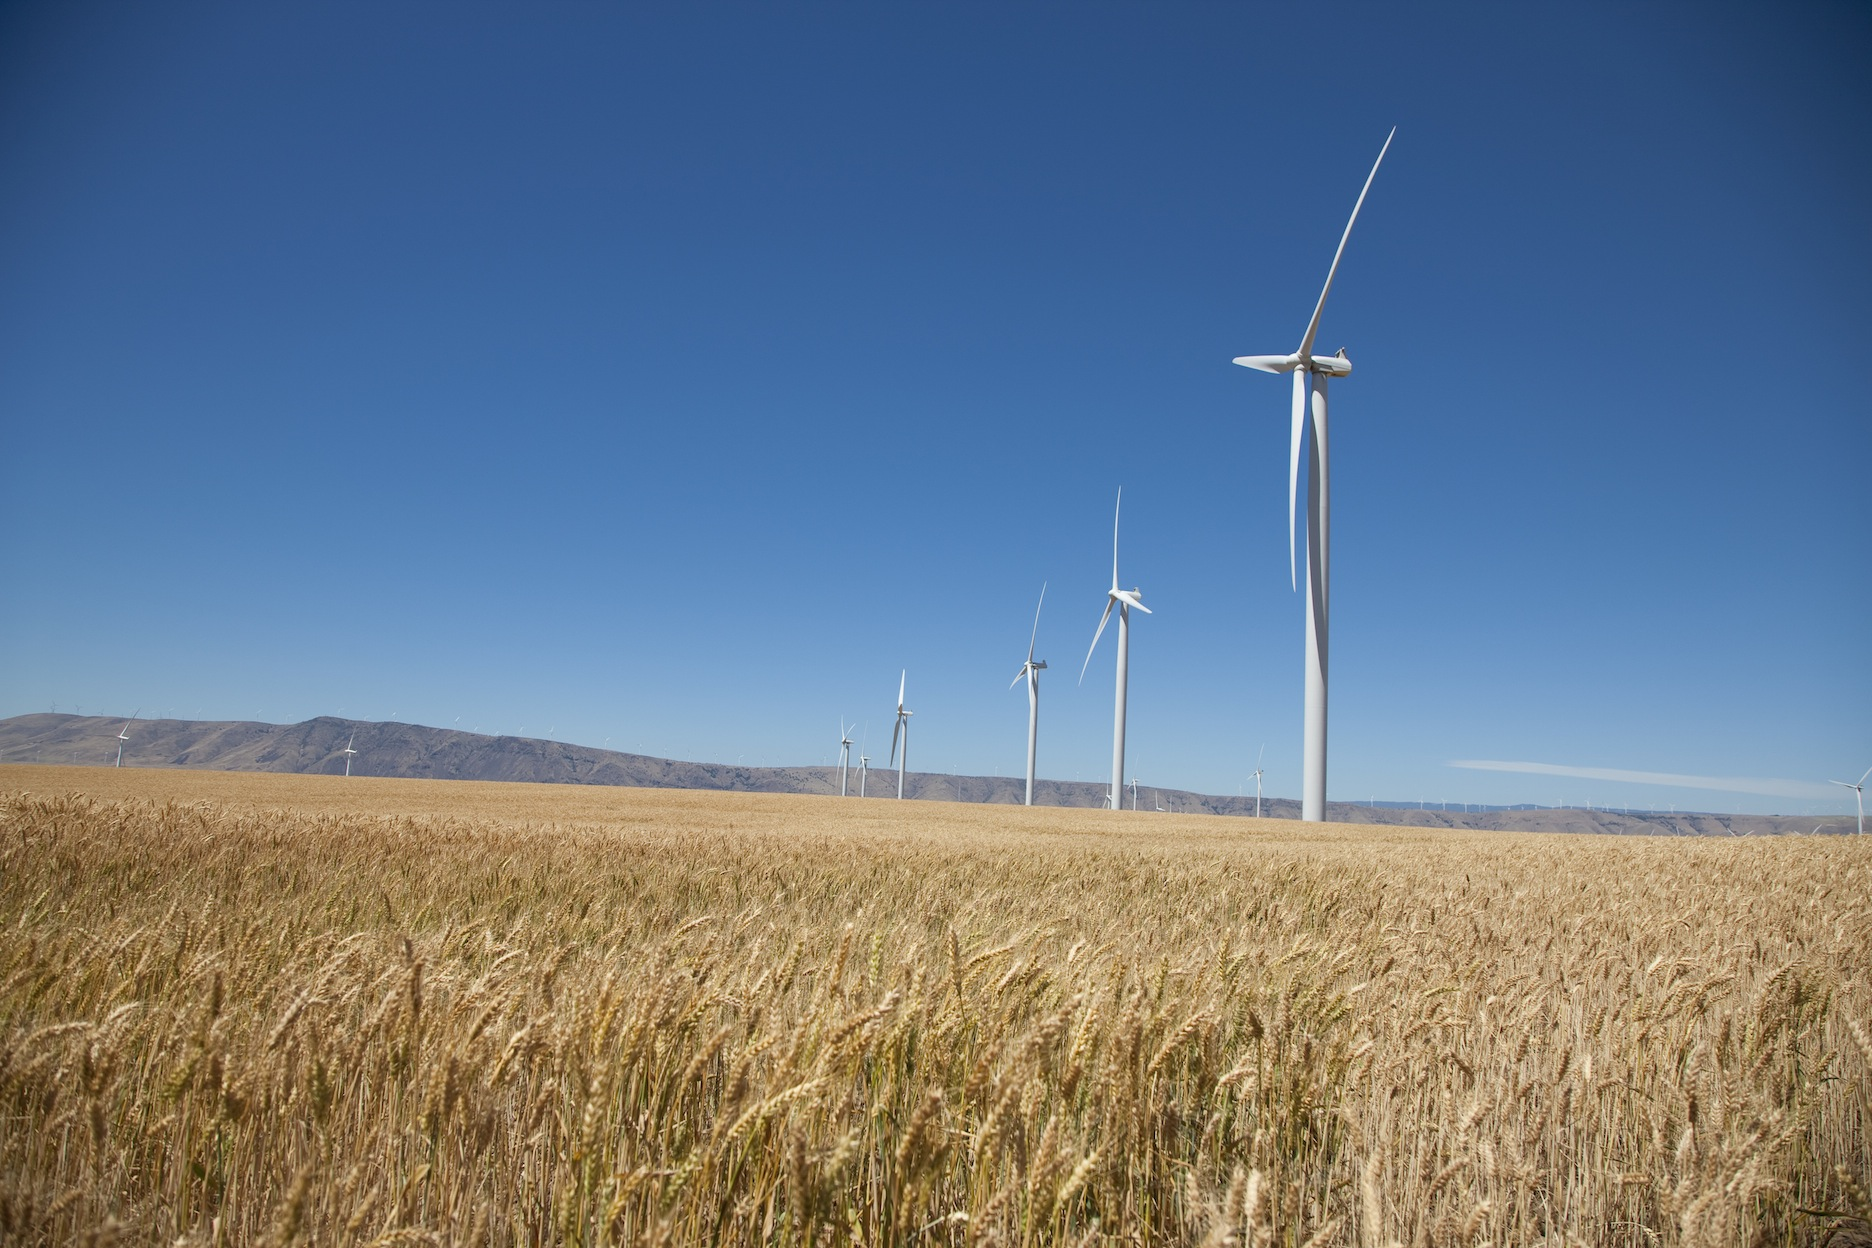 Sustainability at ICC Part 1 of 3: Wind Turbine Still Up In the Air